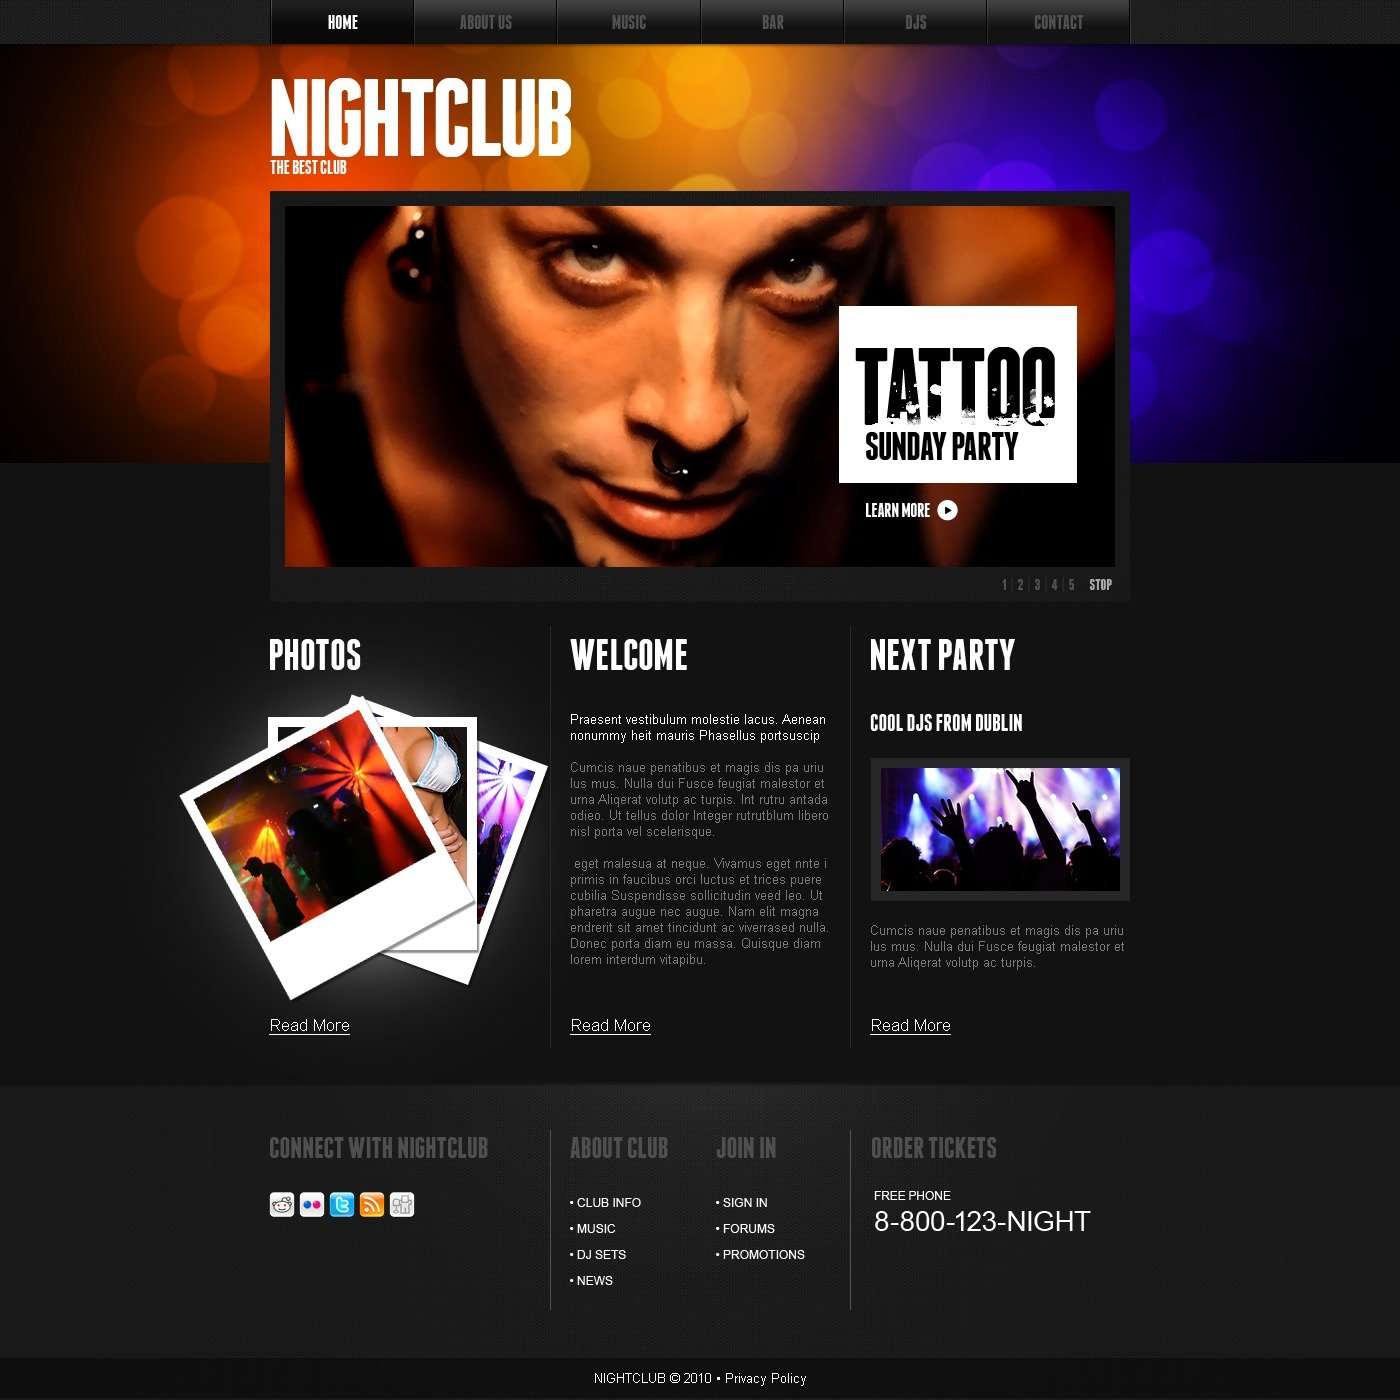 The Night Club PSD Design 54282, one of the best PSD templates of its kind (night club, flash 8, wide), also known as night club PSD template, music PSD template, dances PSD template, dancers PSD template, entertainment PSD template, joy PSD template, energy PSD template, free drinks PSD template, tickets PSD template, party PSD template, deejays PSD template, dj PSD template, events PSD template, beats PSD template, disks PSD template, songs PSD template, tunes PSD template, rhythms PSD template, gallery PSD template, photos PSD template, pictures PSD template, guests PSD template, participants PSD template, interview PSD template, stars PSD template, artists PSD template, funs PSD template, booking PSD template, mob PSD template, glamour girls PSD template, party PSD template, MC cockta and related with night club, music, dances, dancers, entertainment, joy, energy, free drinks, tickets, party, deejays, dj, events, beats, disks, songs, tunes, rhythms, gallery, photos, pictures, guests, participants, interview, stars, artists, funs, booking, mob, glamour girls, party, MC cockta, etc.